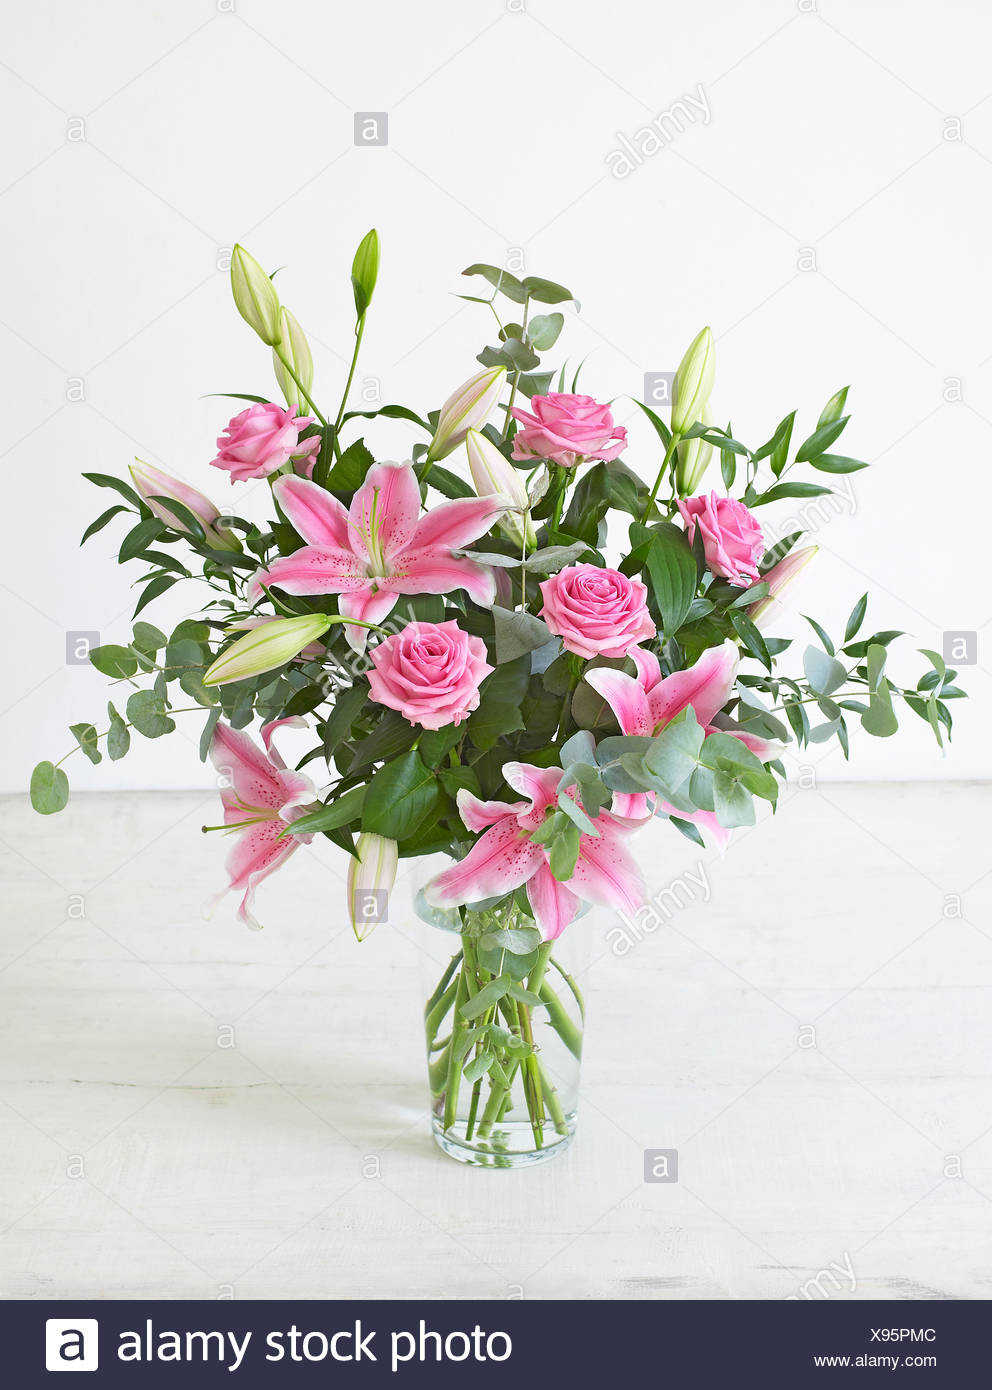 Lily rose stock photos lily rose stock images alamy vase container bouquet of flowers including eucalyptus lily rose close up izmirmasajfo